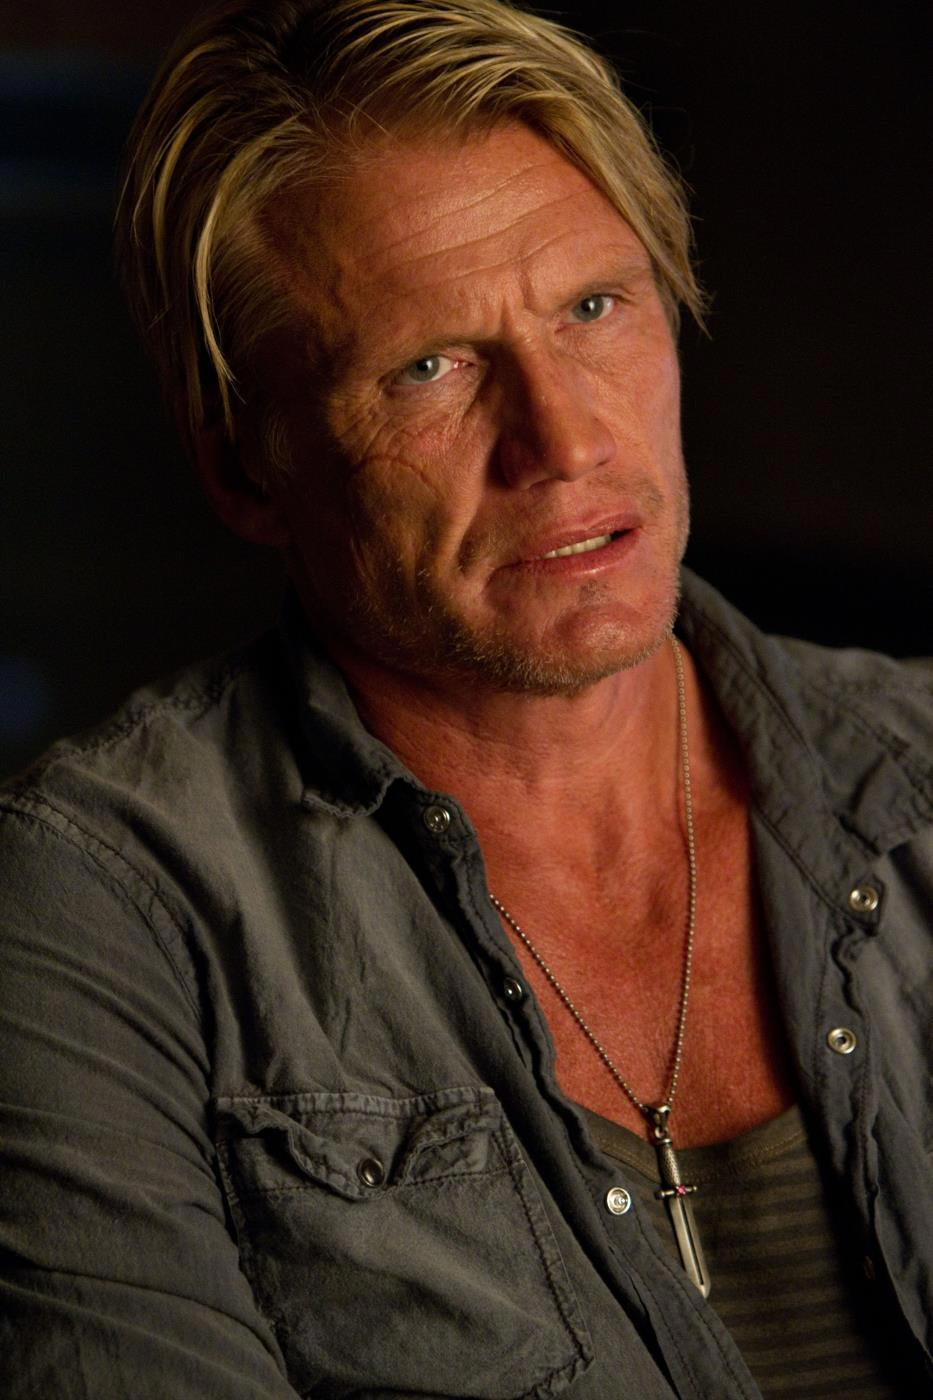 THE EXPENDABLES 2 Photos (+17)